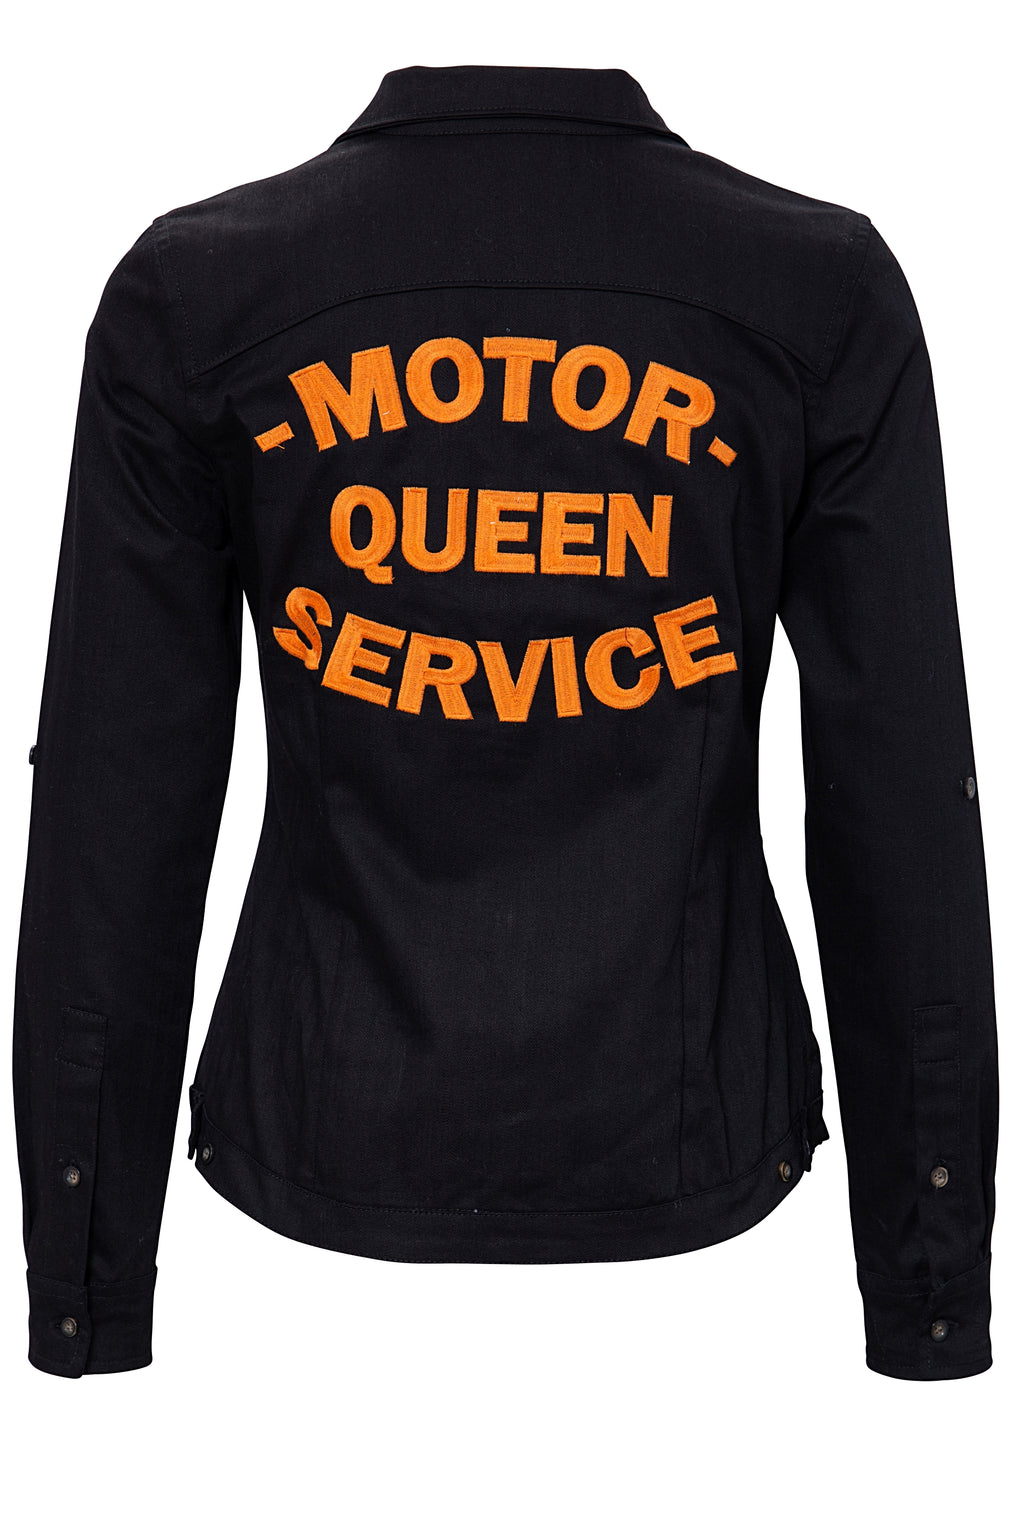 Queen Kerosin  - Motor Service - Shirt